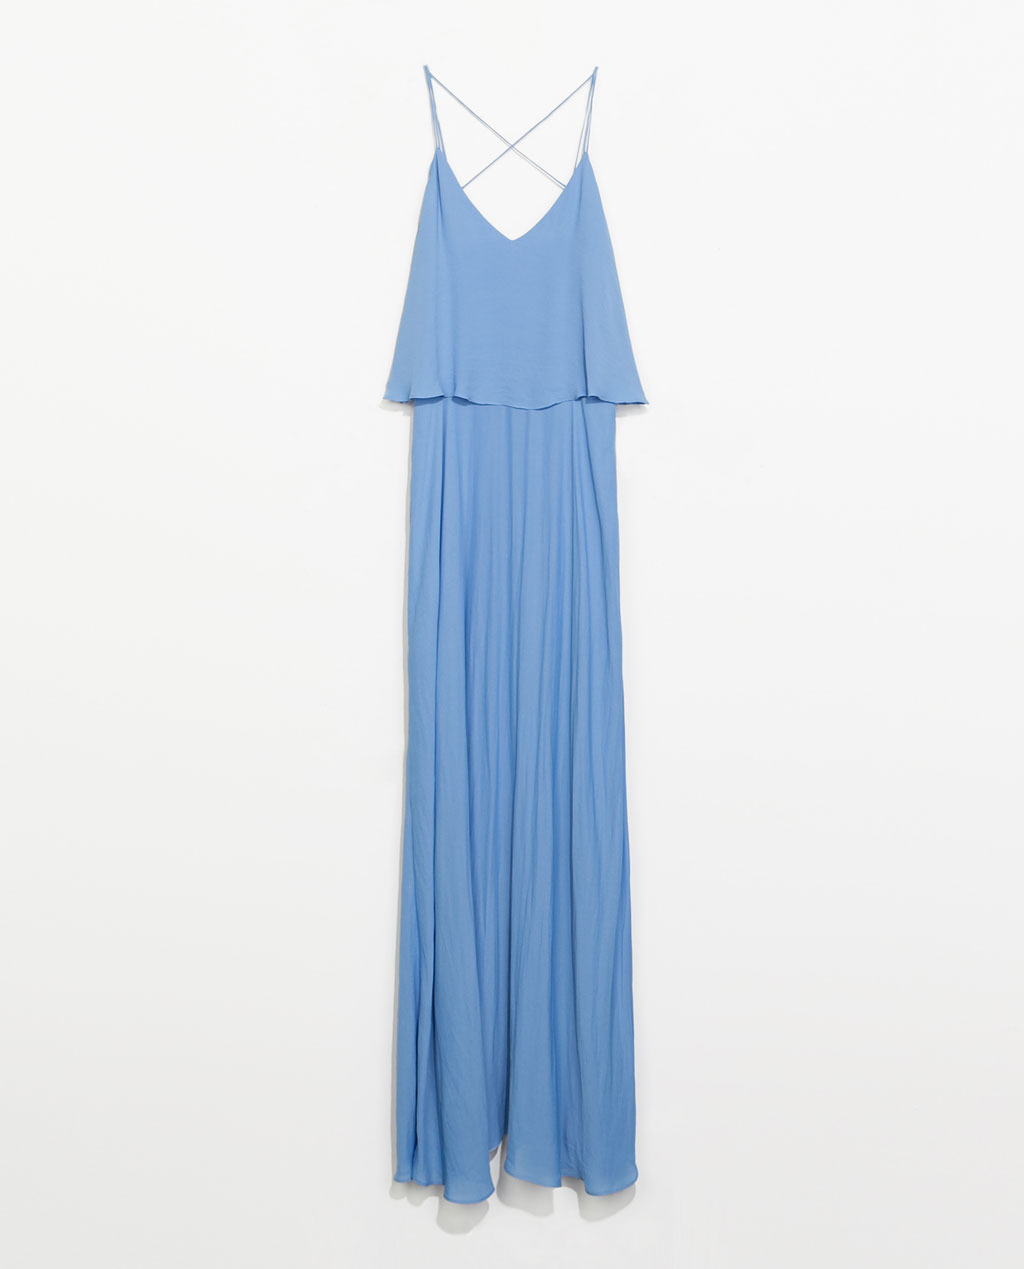 Long Dress With Low Back - neckline: low v-neck; sleeve style: spaghetti straps; fit: loose; pattern: plain; style: maxi dress; back detail: low cut/open back; predominant colour: pale blue; occasions: casual, evening, occasion, holiday; length: floor length; fibres: polyester/polyamide - 100%; hip detail: soft pleats at hip/draping at hip/flared at hip; sleeve length: sleeveless; texture group: sheer fabrics/chiffon/organza etc.; pattern type: fabric; trends: sorbet shades; season: s/s 2014